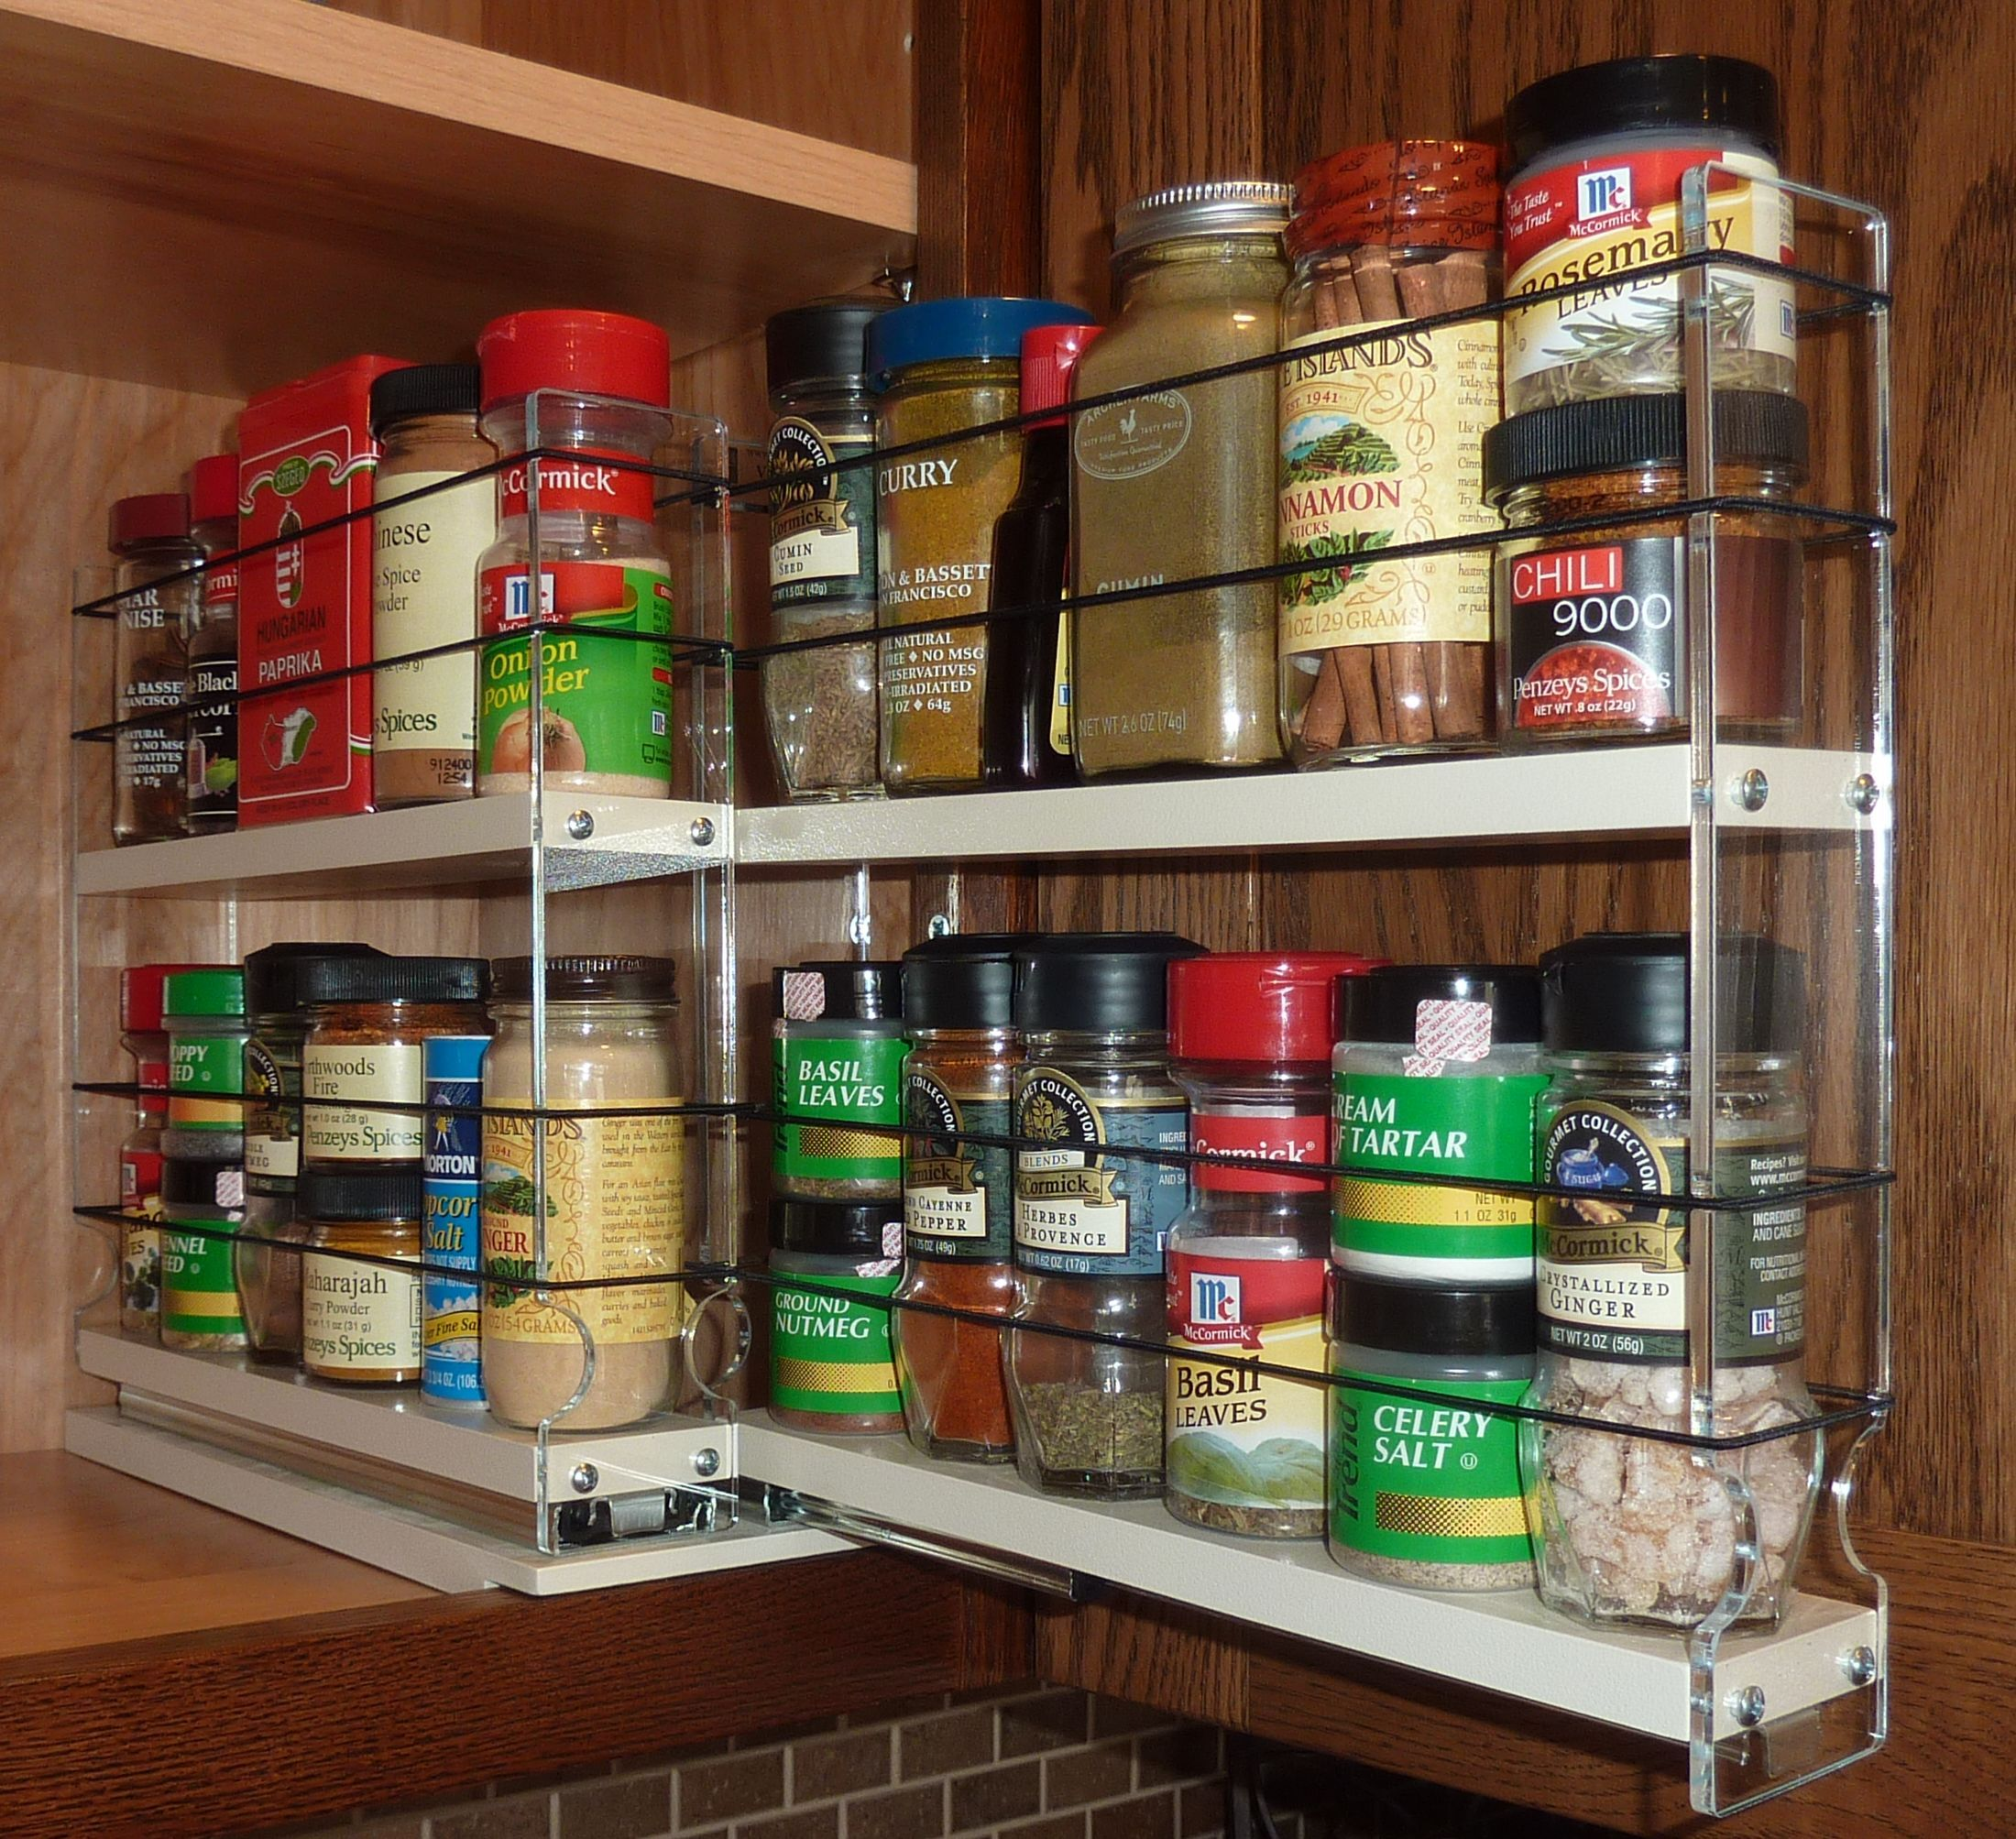 Cabinet Door Spice Racks Pull Out Spice Racks